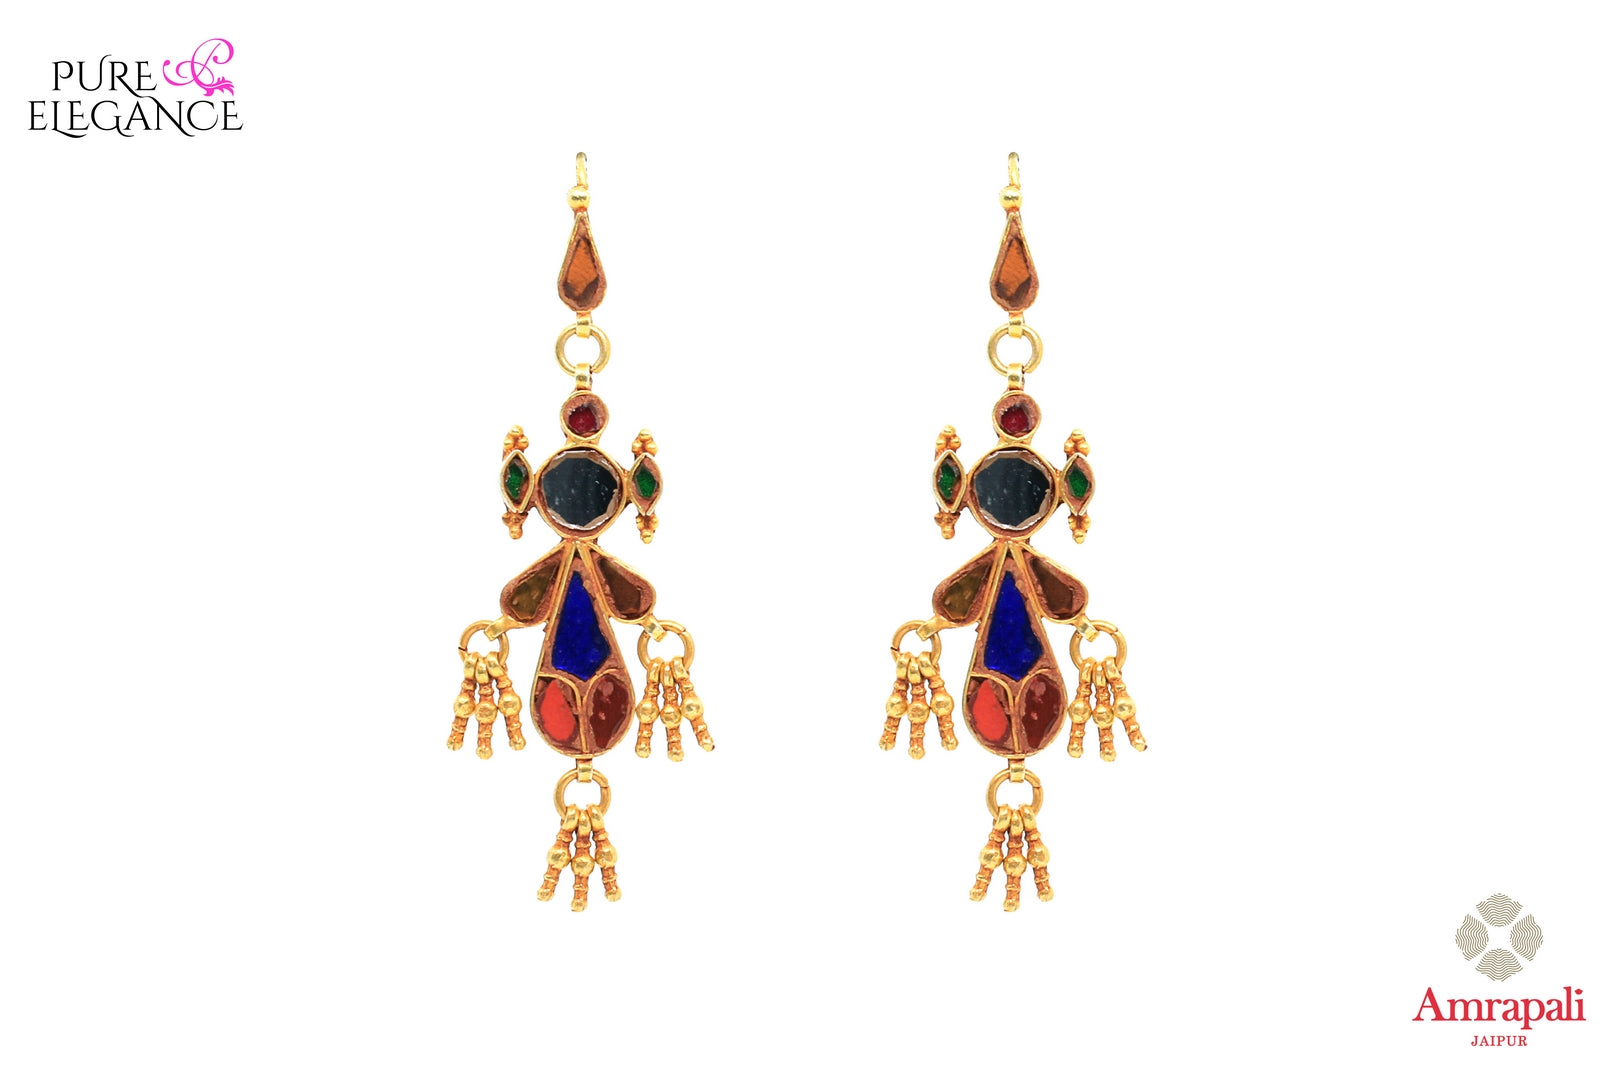 Buy silver gold plated multicolor glass earrings online in USA from Amrapali. If you are looking for Indian silver gold plated jewelry in USA, then Pure Elegance Indian fashion store is the place for you. A whole range of exquisite of traditional Indian jewellery is waiting for you on our shelves, you can also opt to shop online.-front view